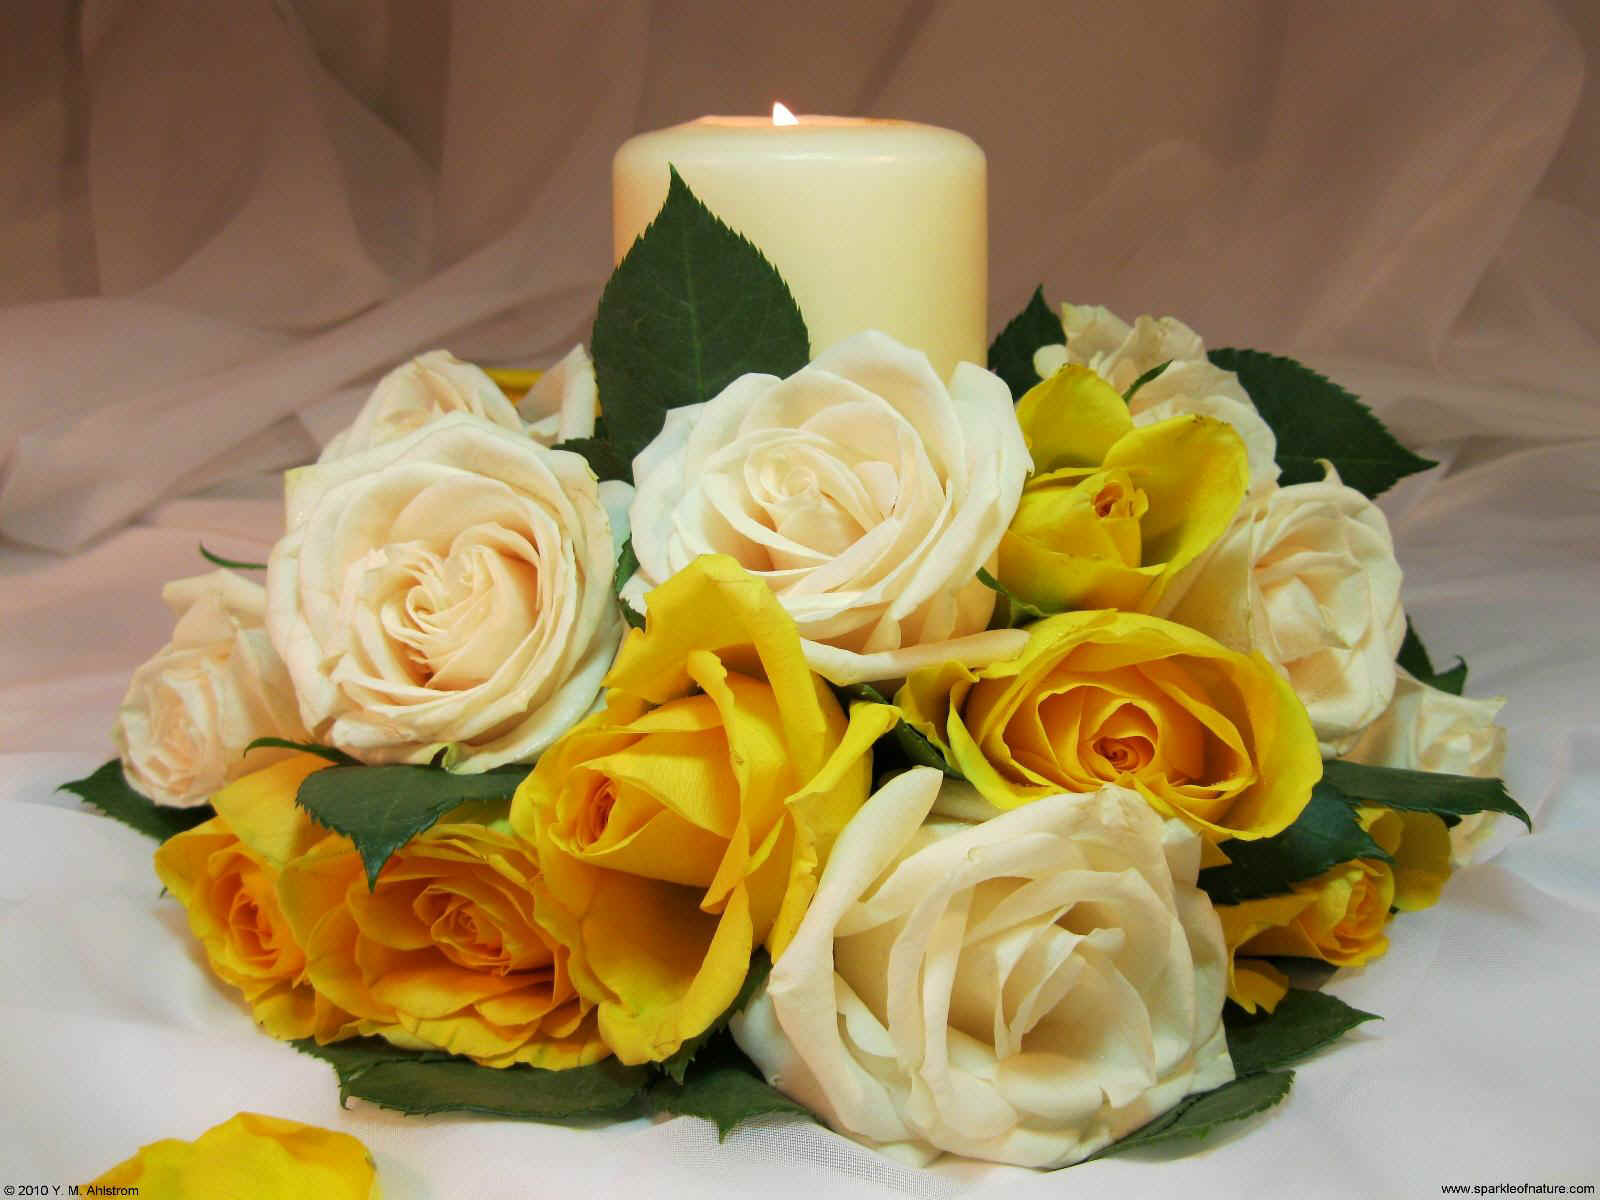 21514 yellow rose candle 1600x1200.jpg (186822 bytes)